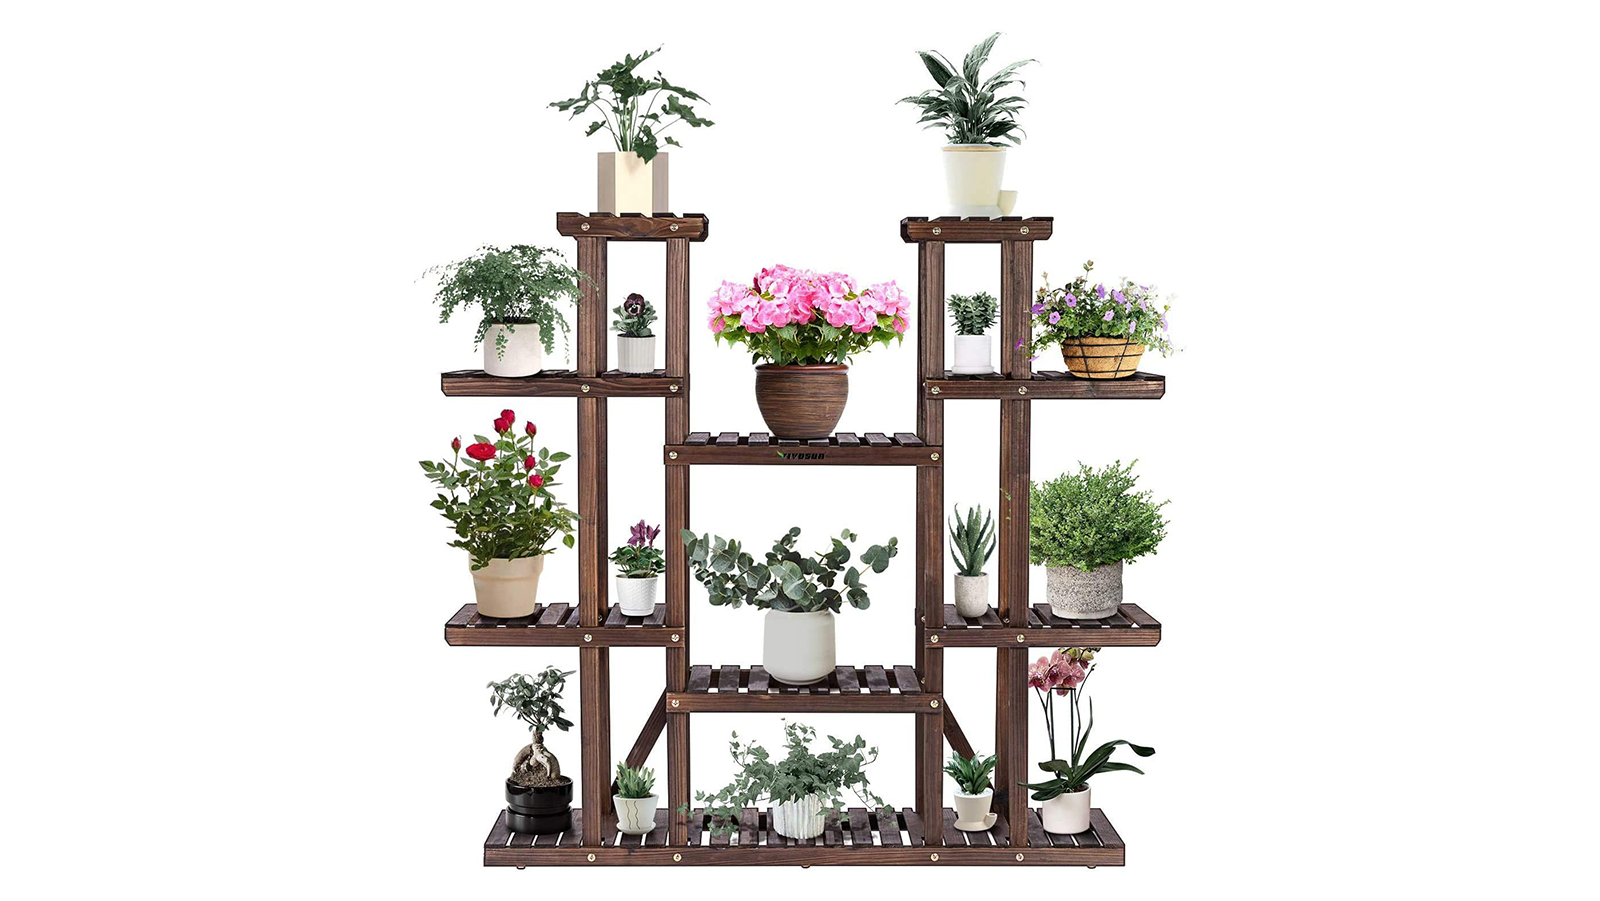 A multi-tiered wood plant stand with several plants